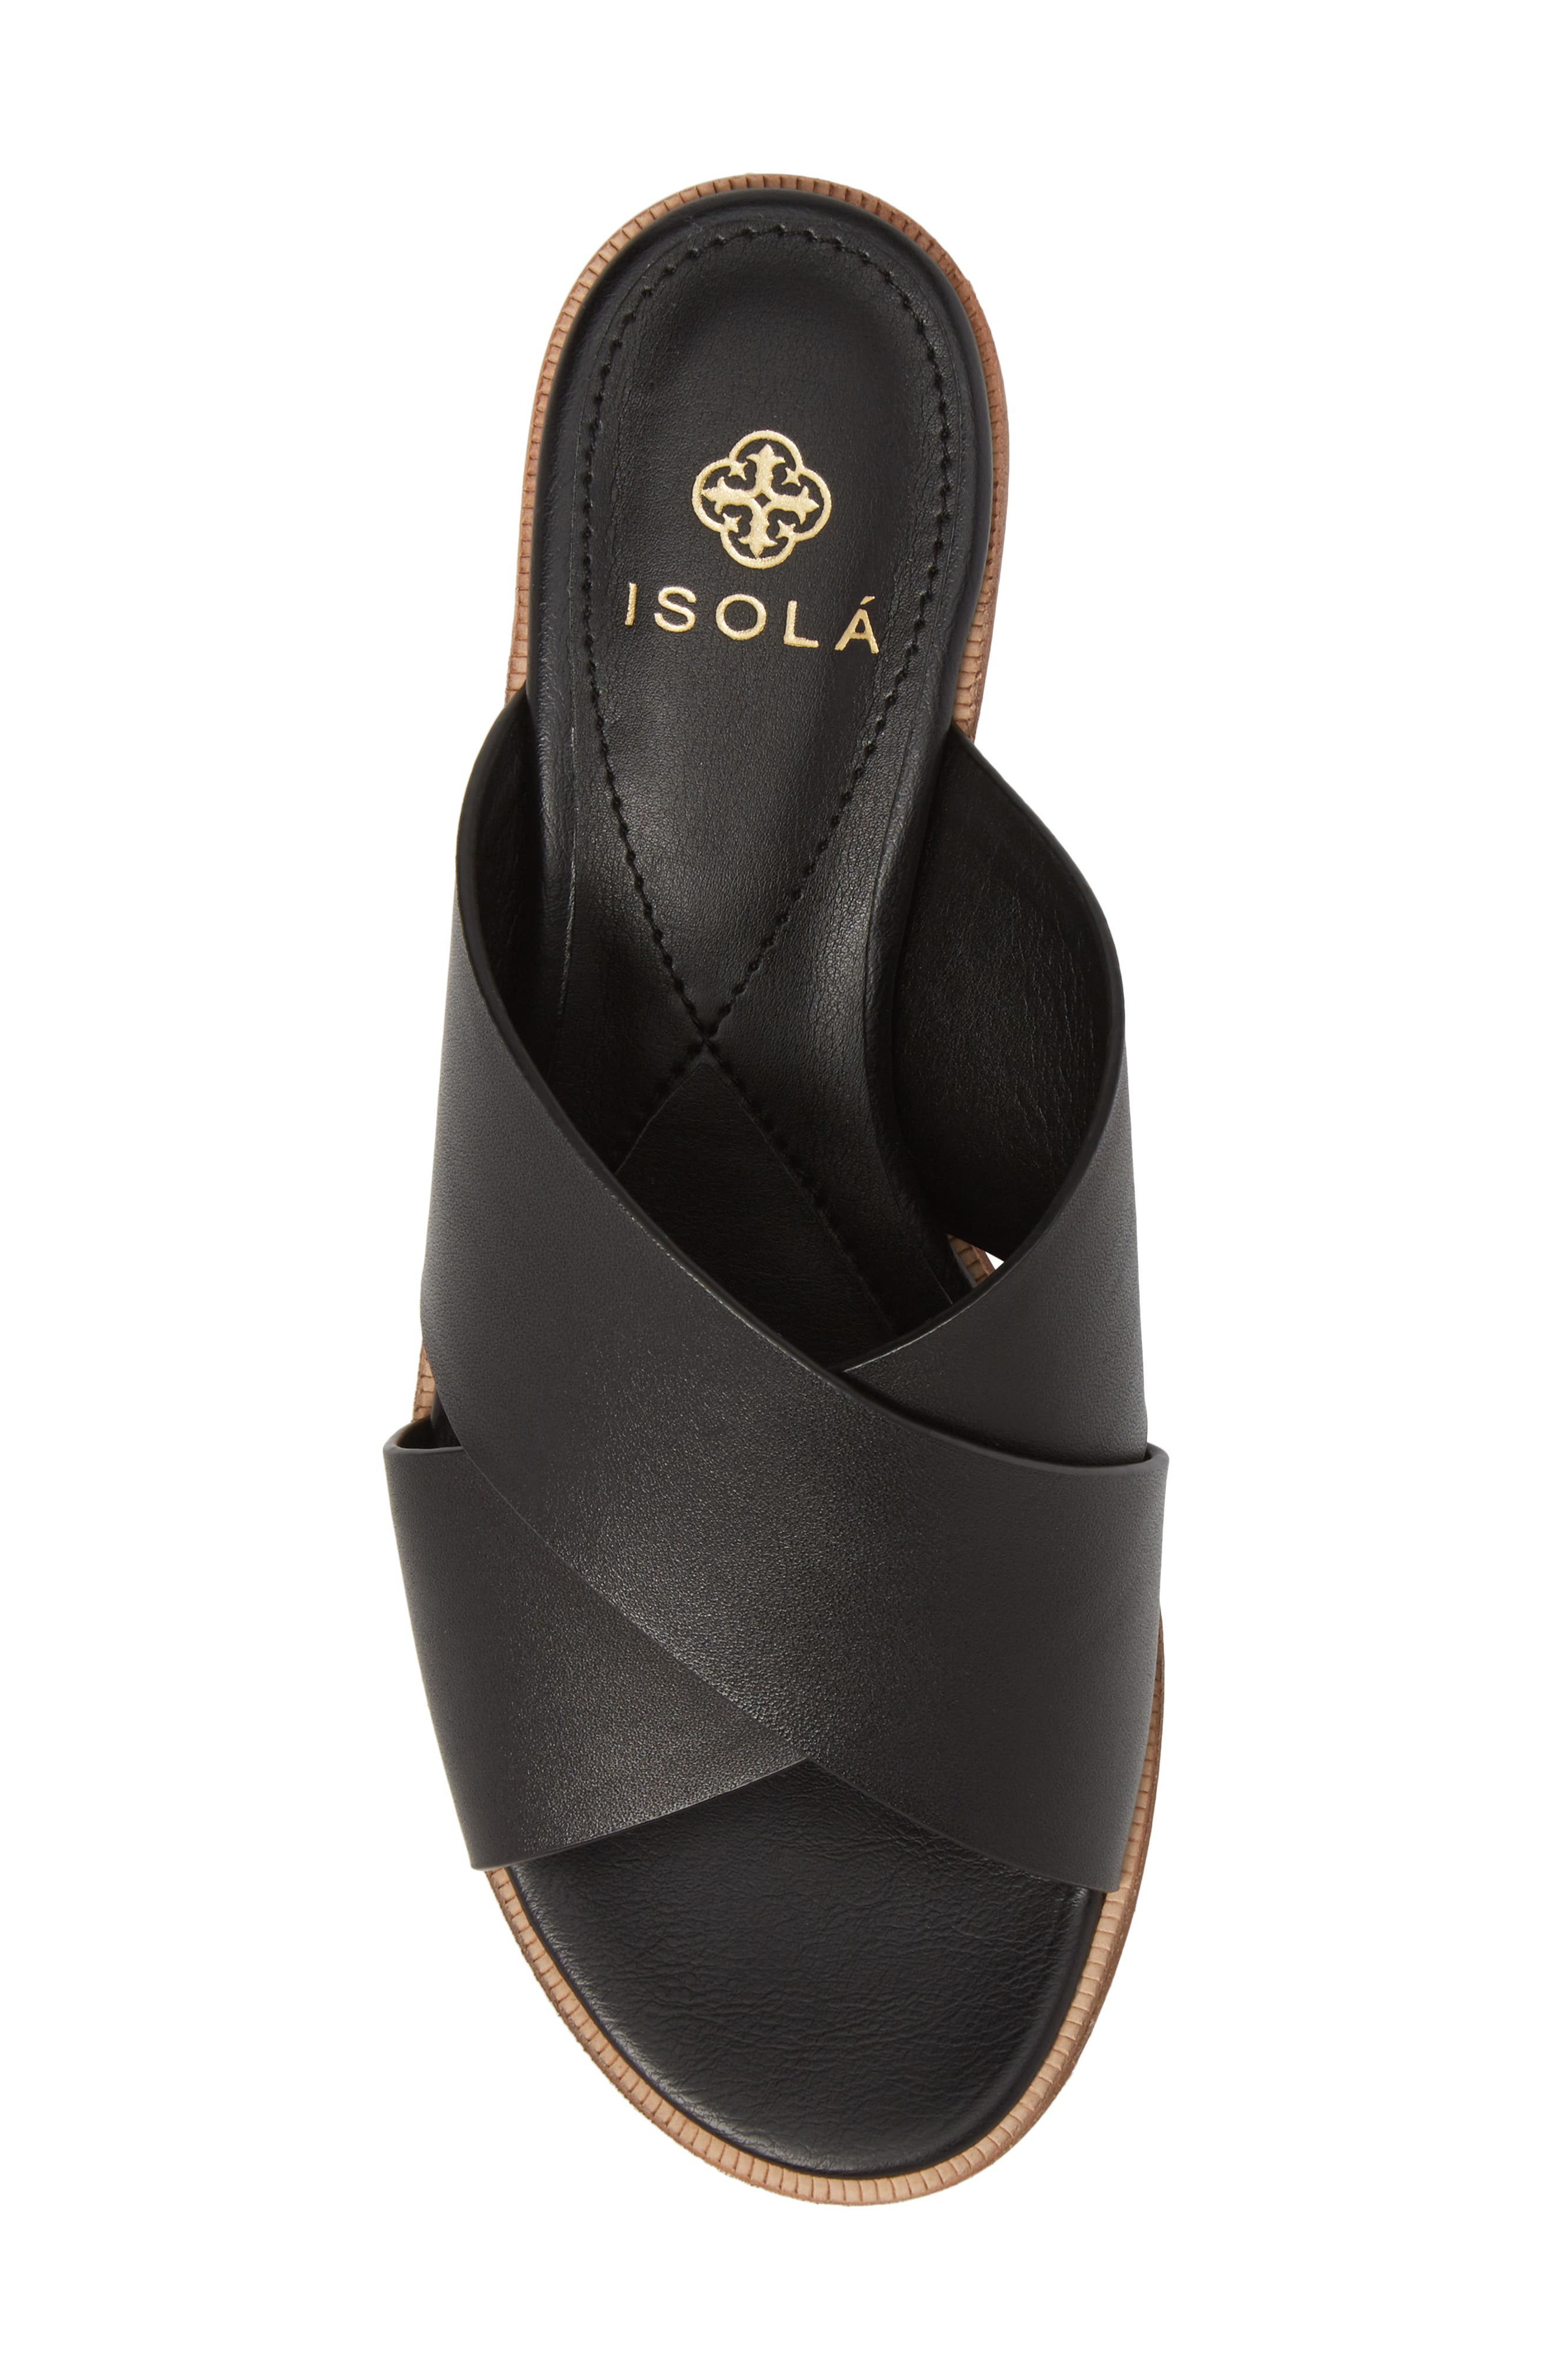 Isola Ginata Slide Sandal,                             Alternate thumbnail 5, color,                             Black Leather